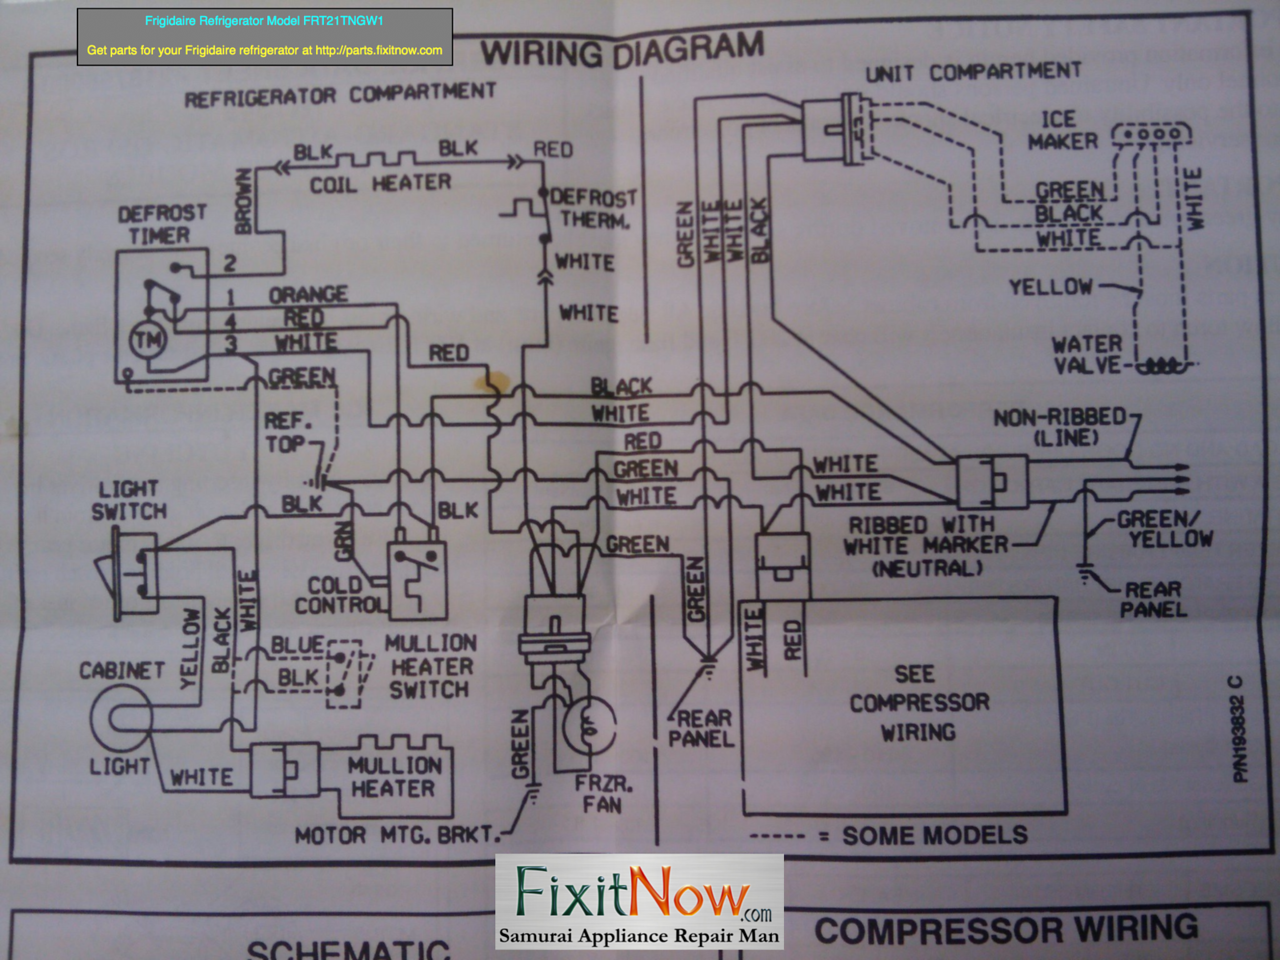 4927632513_66c123c922_o X2 wiring diagram for ge refrigerator readingrat net ge electric dryer wiring diagram at soozxer.org